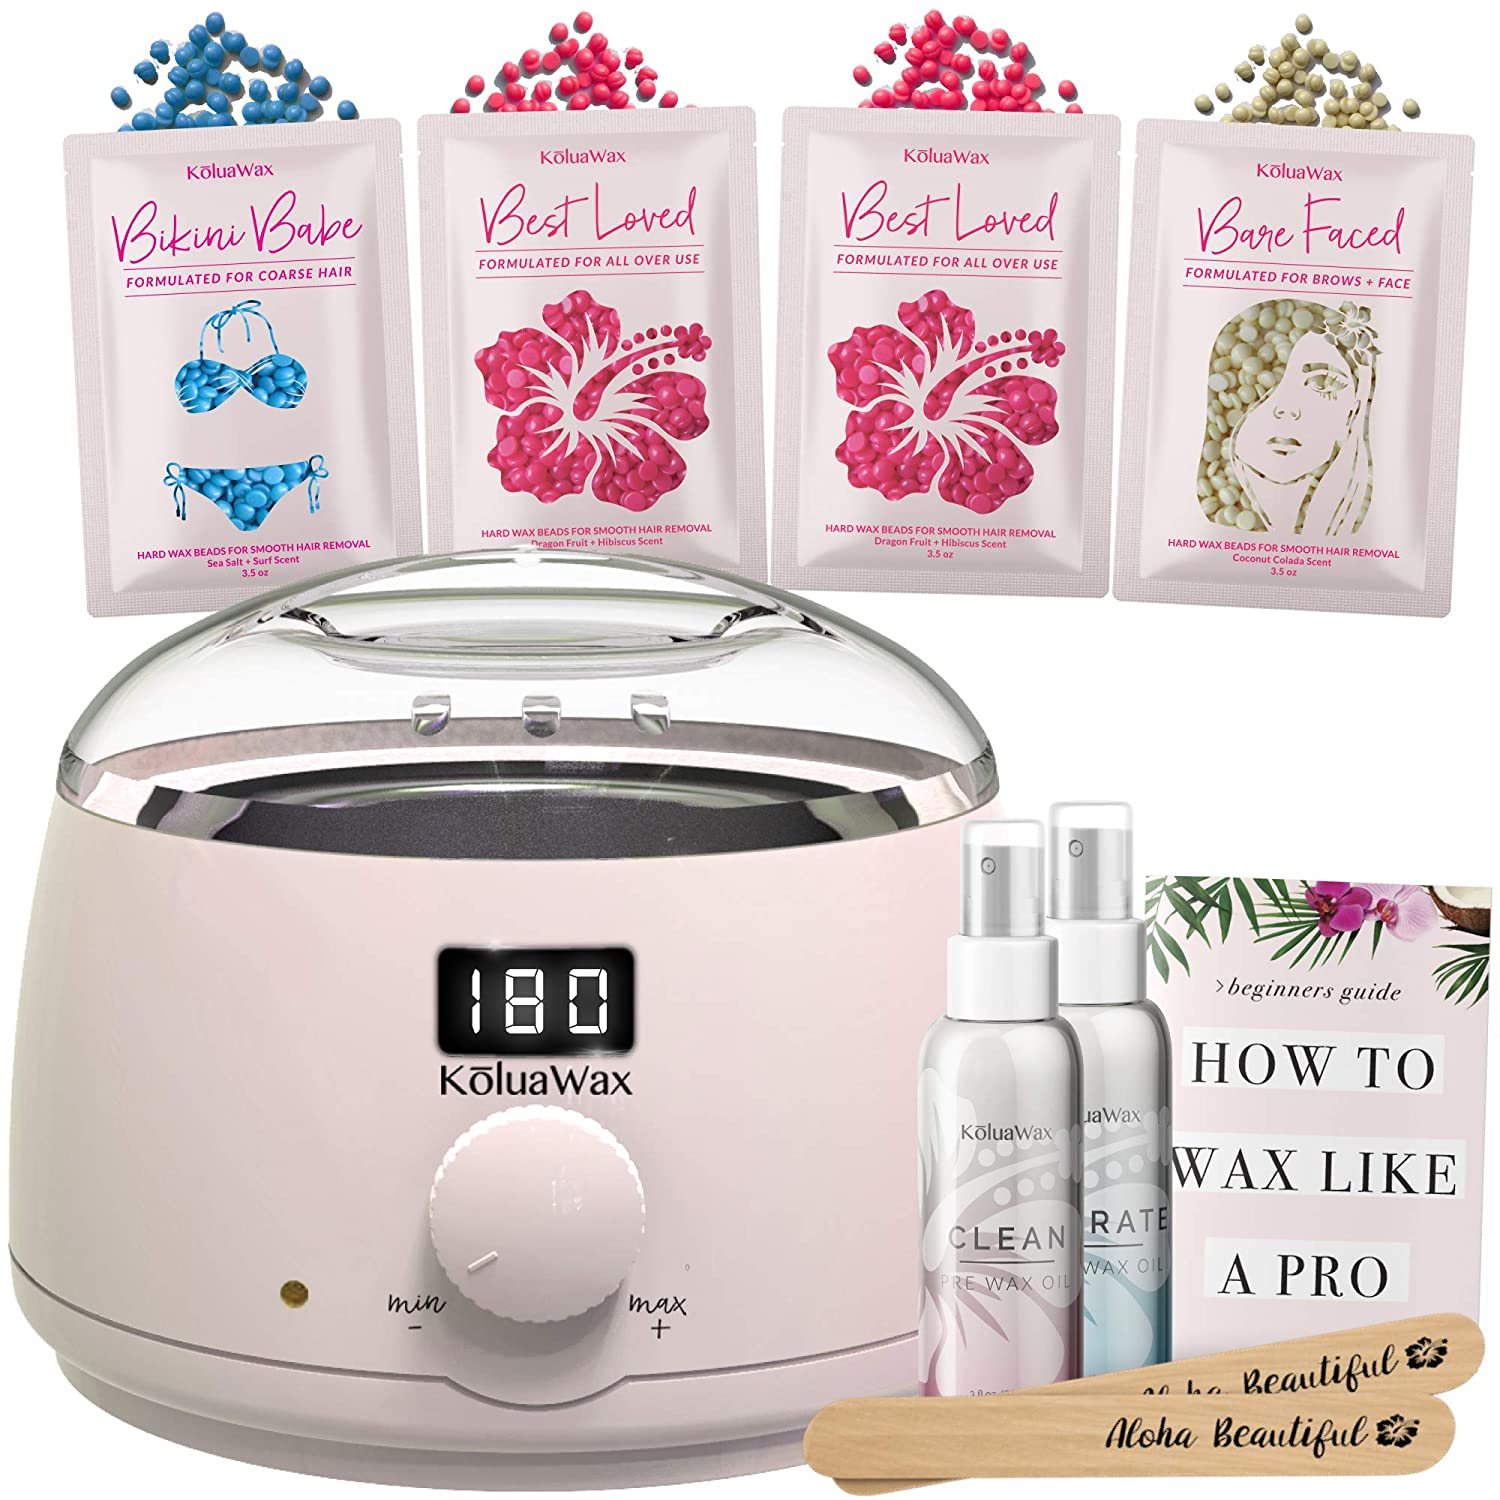 Digital Waxing Kit, $40 @amazon.com